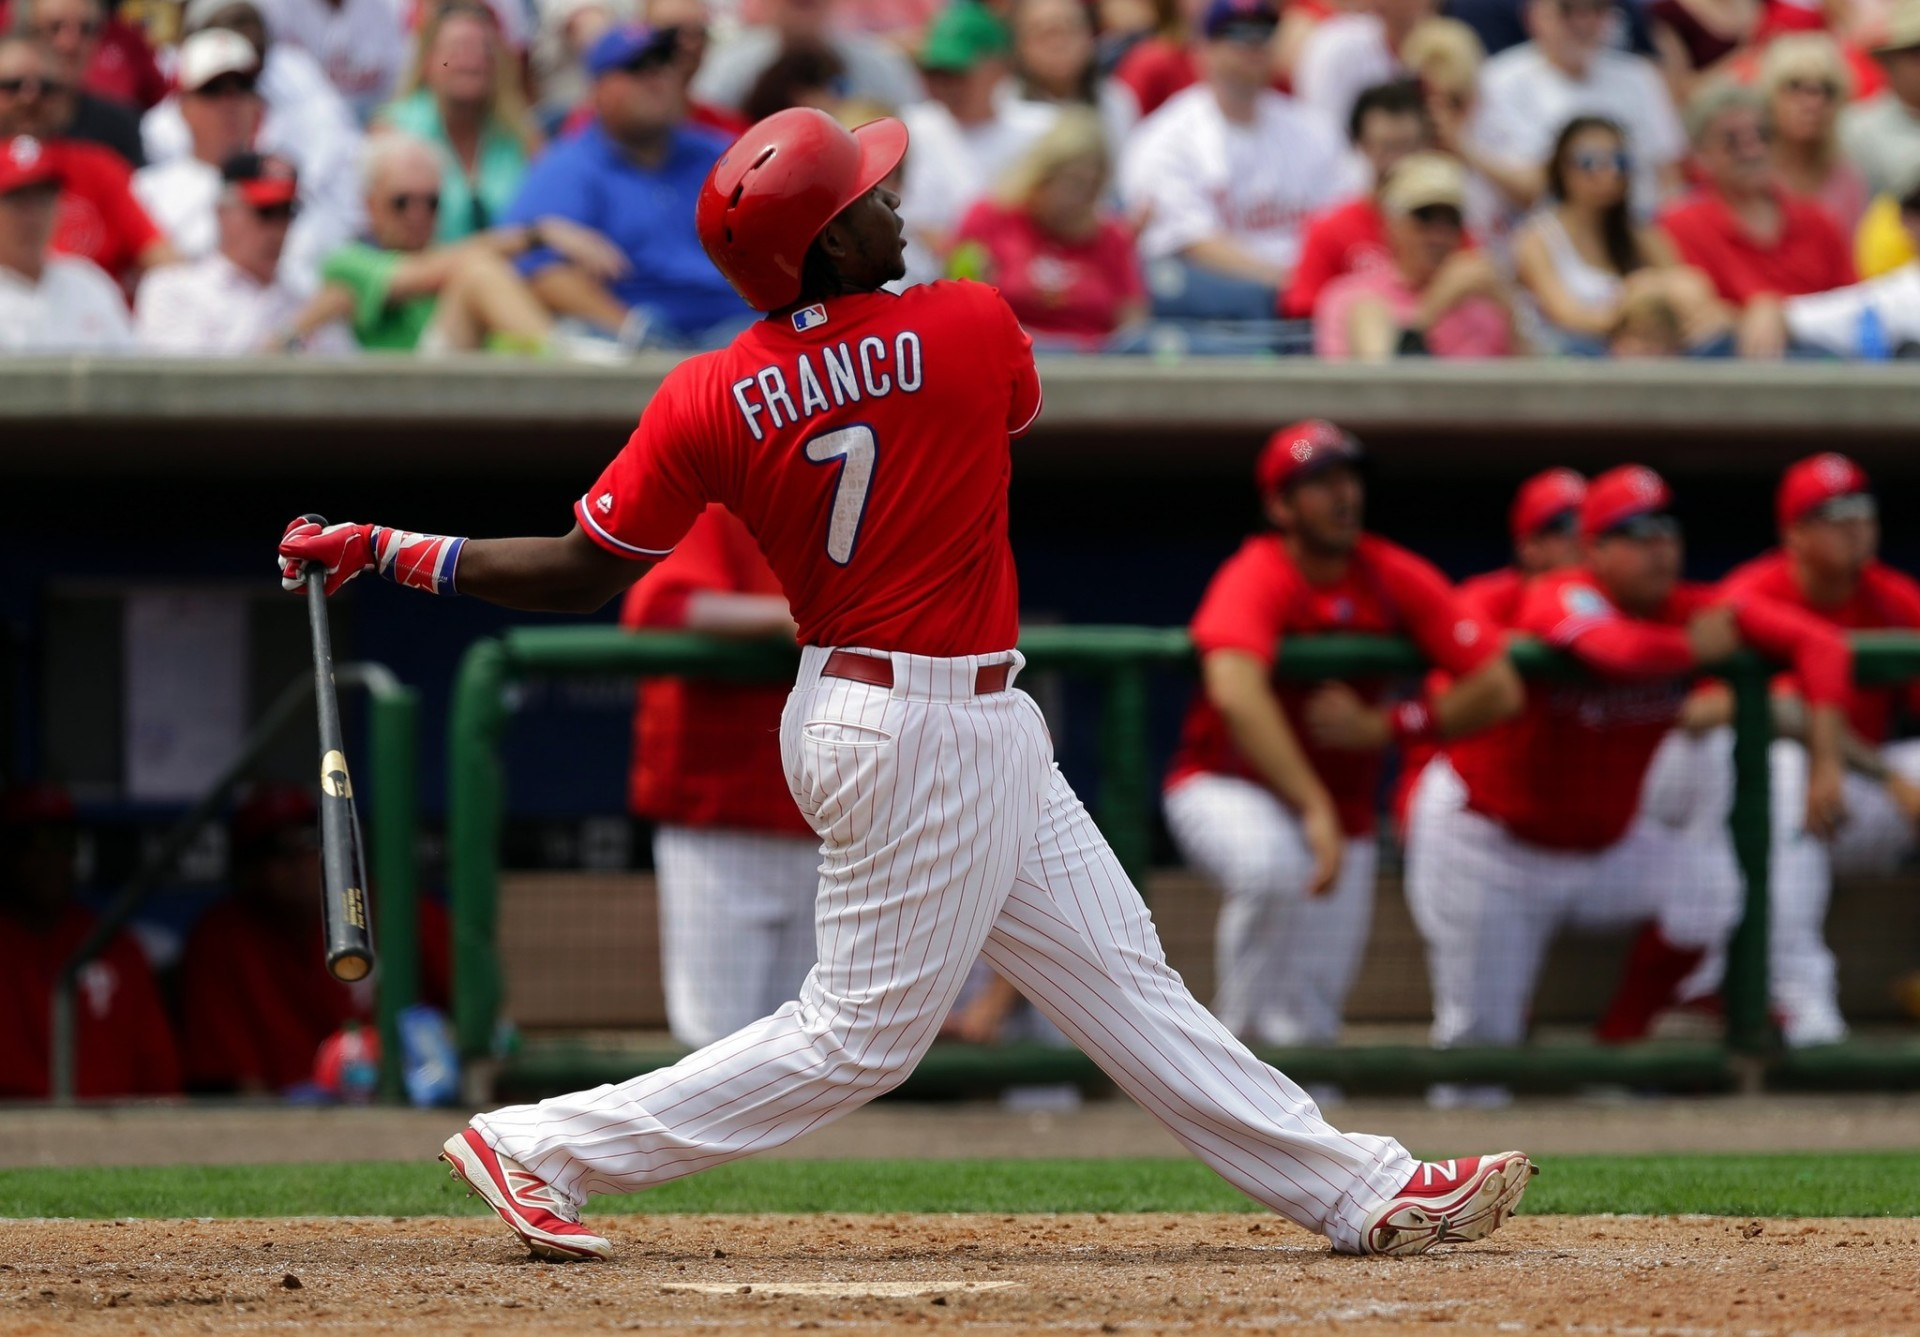 Phillies Spring Training Highlights and Season Preview: What You Missed (active roster only)